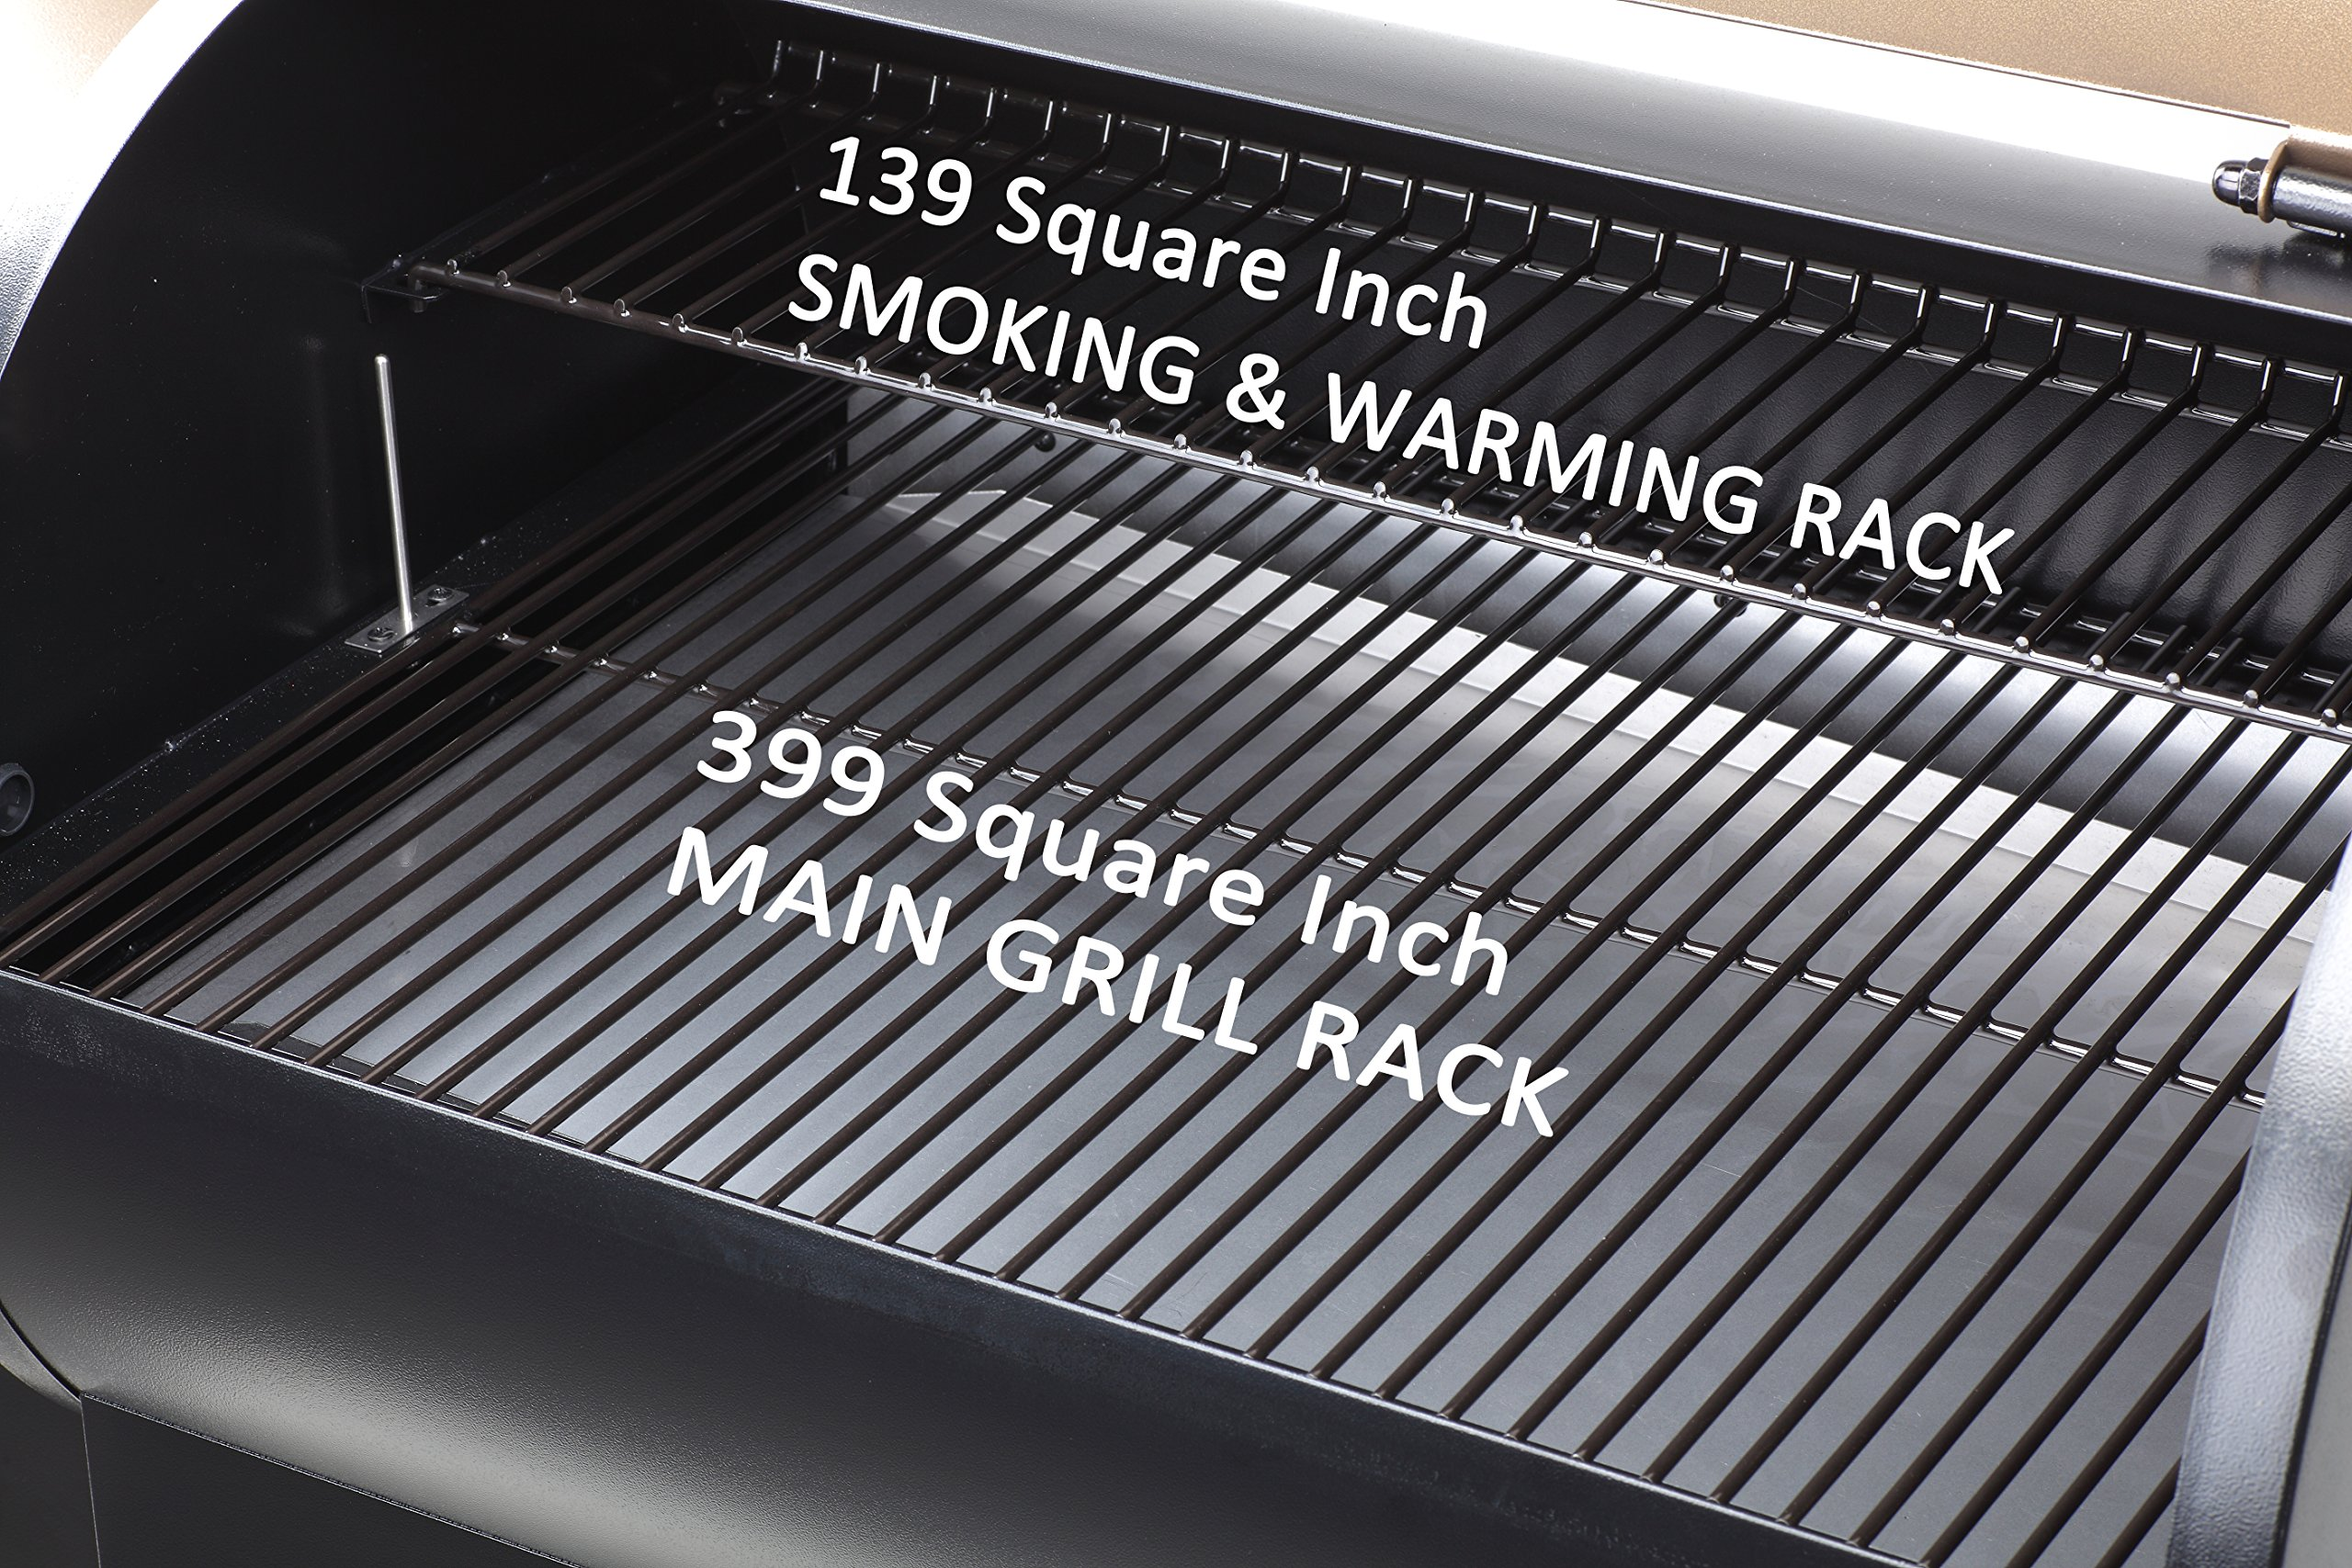 Z GRILLS ZPG-550B 2019 Upgrade Model Wood Pellet Grill & Smoker 6 in 1 BBQ Grill Auto Temperature Control, 550 sq Inch Deal, Black by Z GRILLS (Image #4)